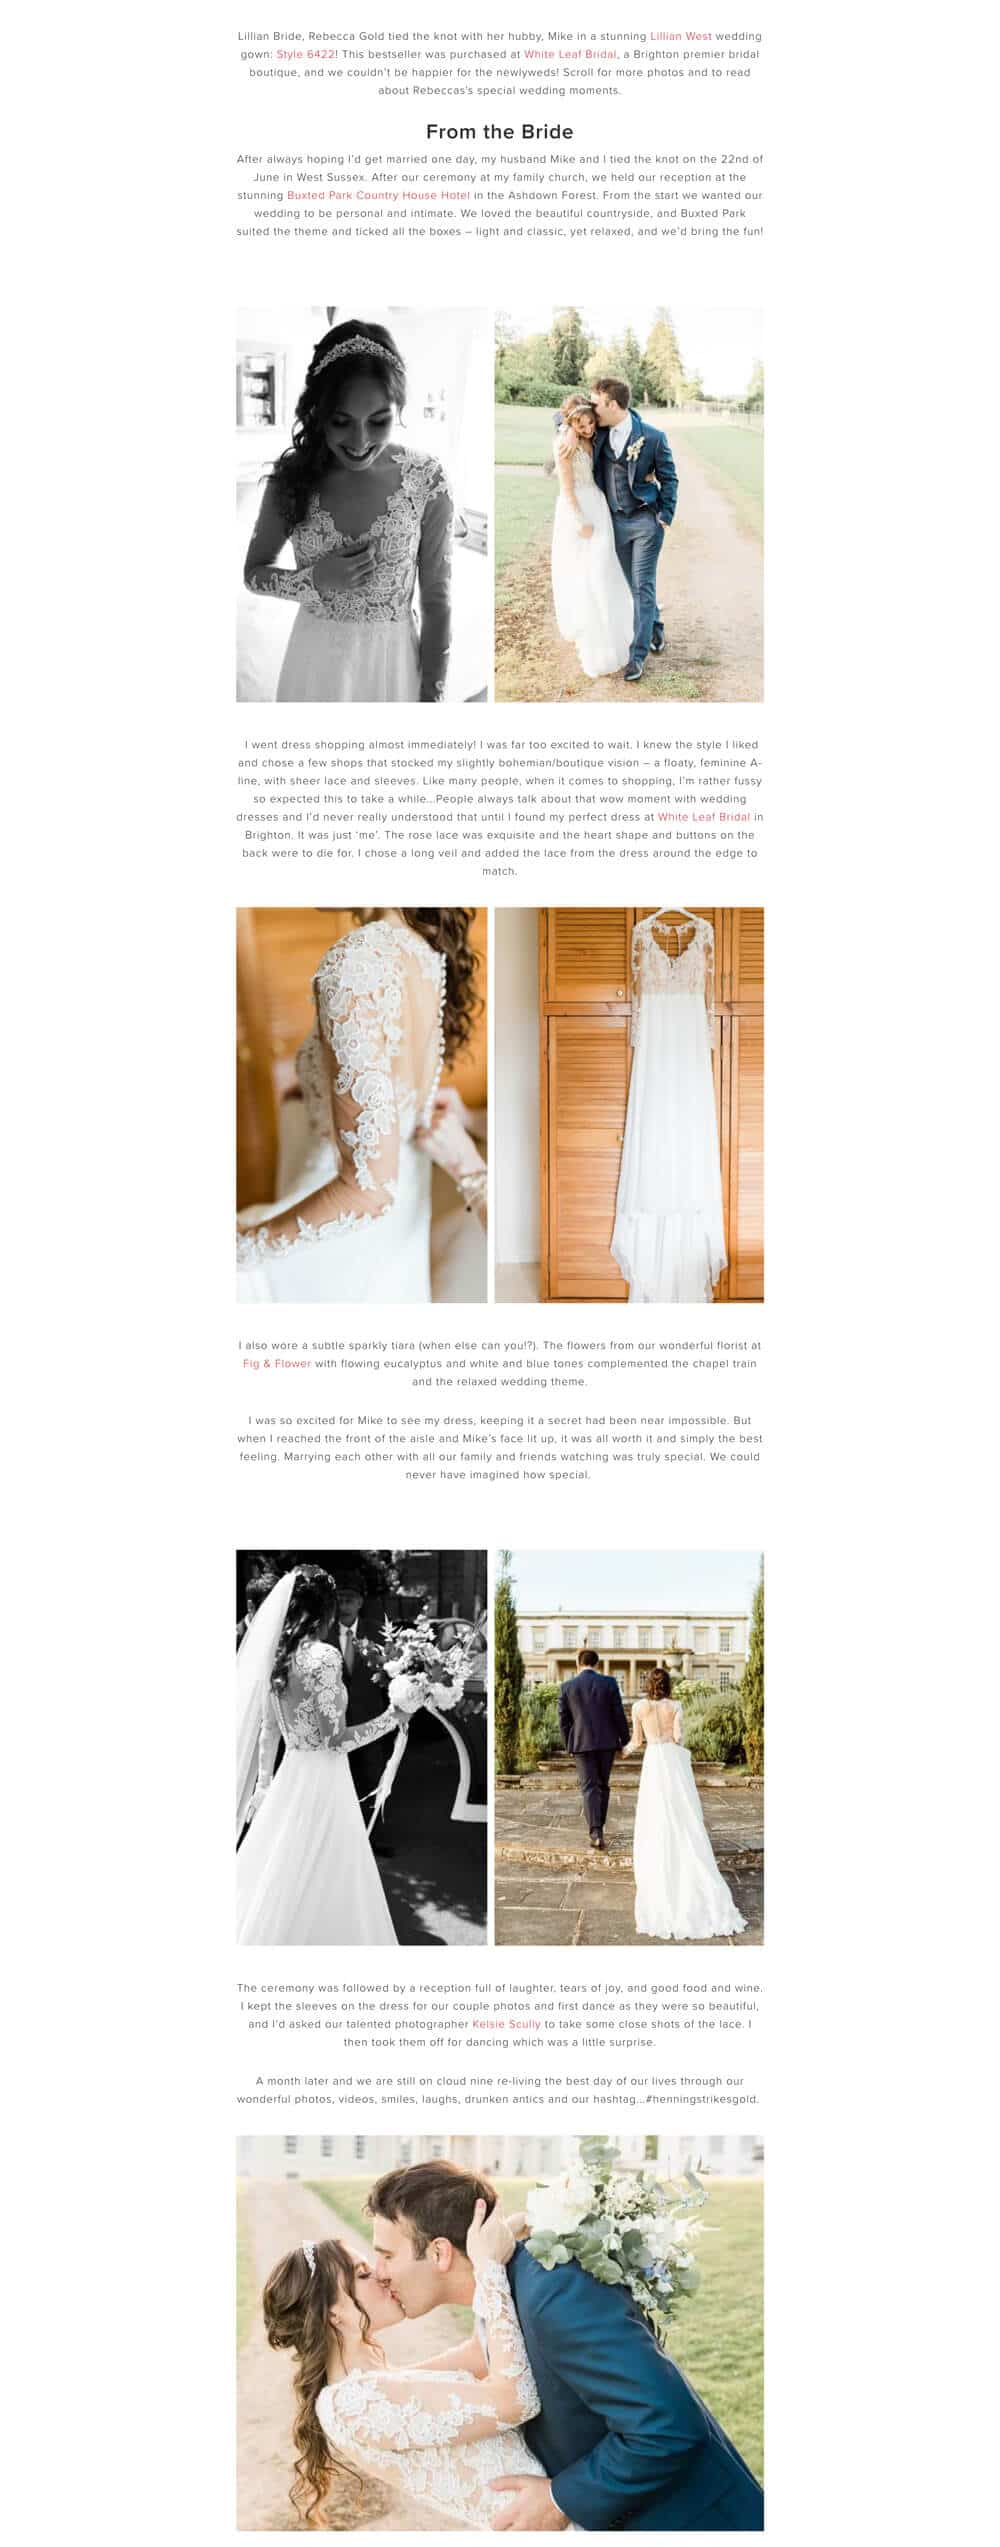 Buxted Park wedding photographer feature in Justin-Alexander